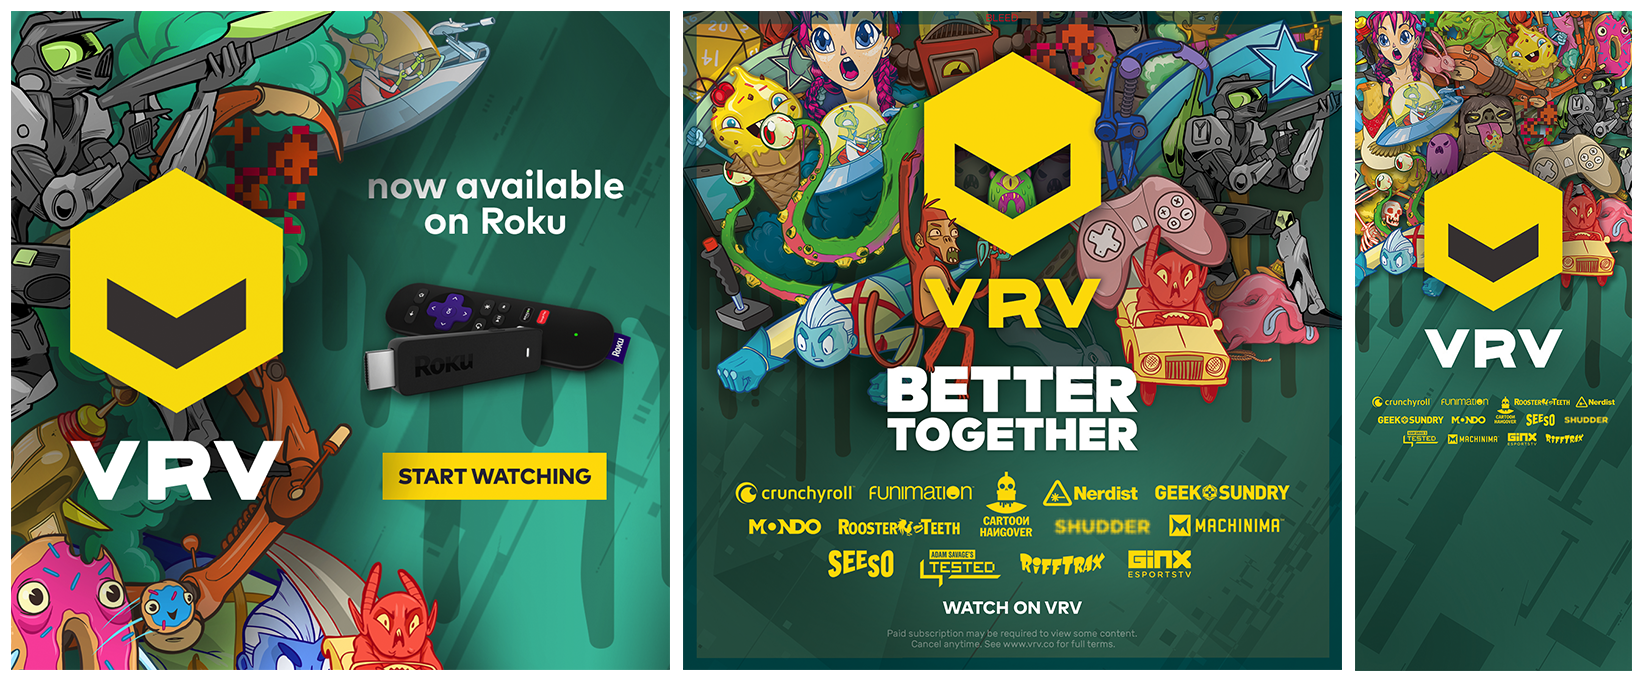 VRV_Launch_Comp_02.png